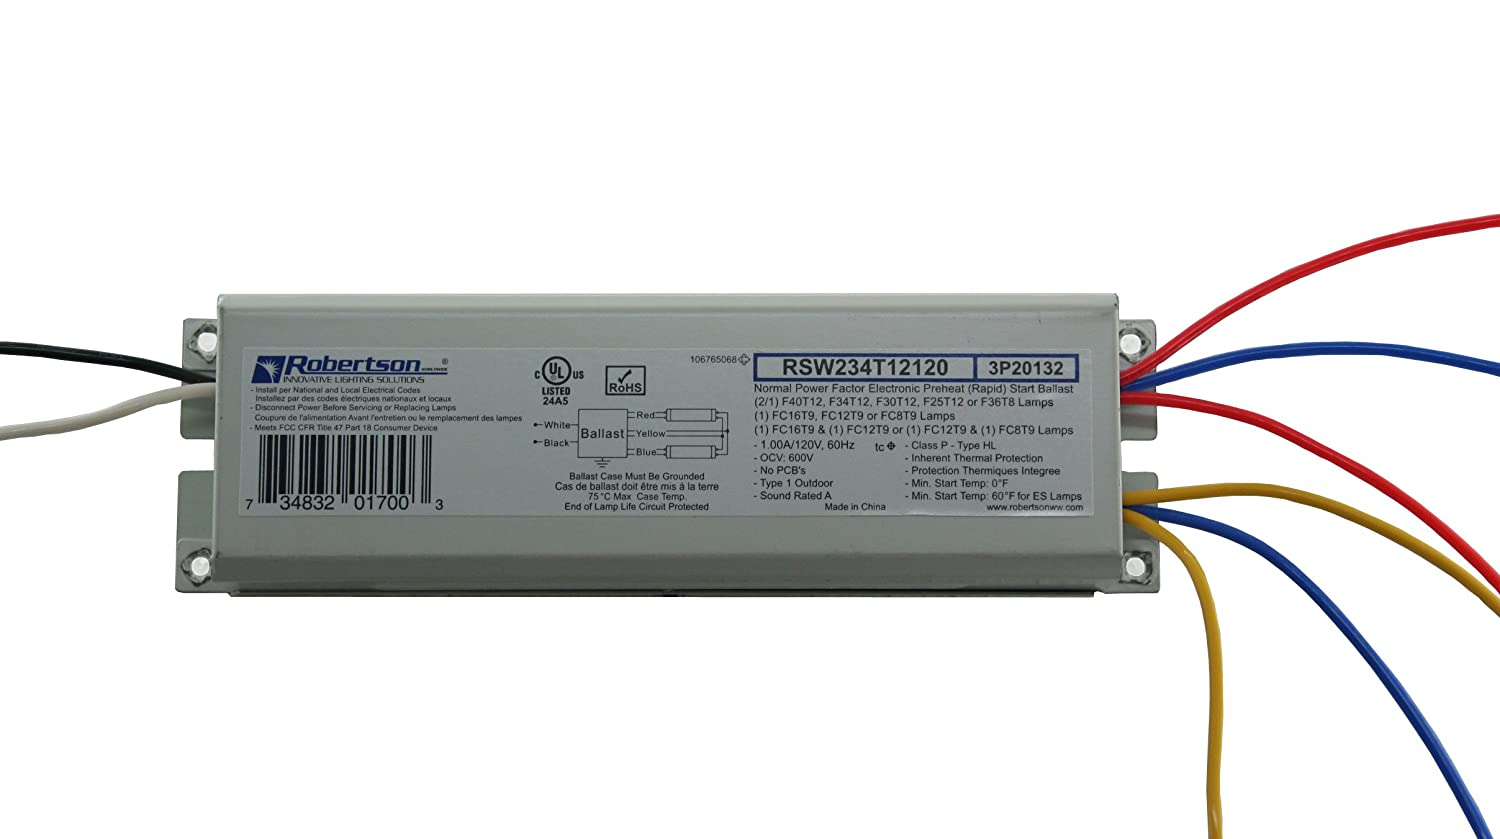 ROBERTSON 3P20132 Individual Fluorescent eBallast, 2 F40T12 Linear Lamp, Preheat- Rapid Start, 120Vac, 50-60Hz, Normal Ballast Factor, NPF, Model RSW234T12120 /A (Replaces Model RSW240T12120 /B) Robertson Worldwide CECOMINOD055838